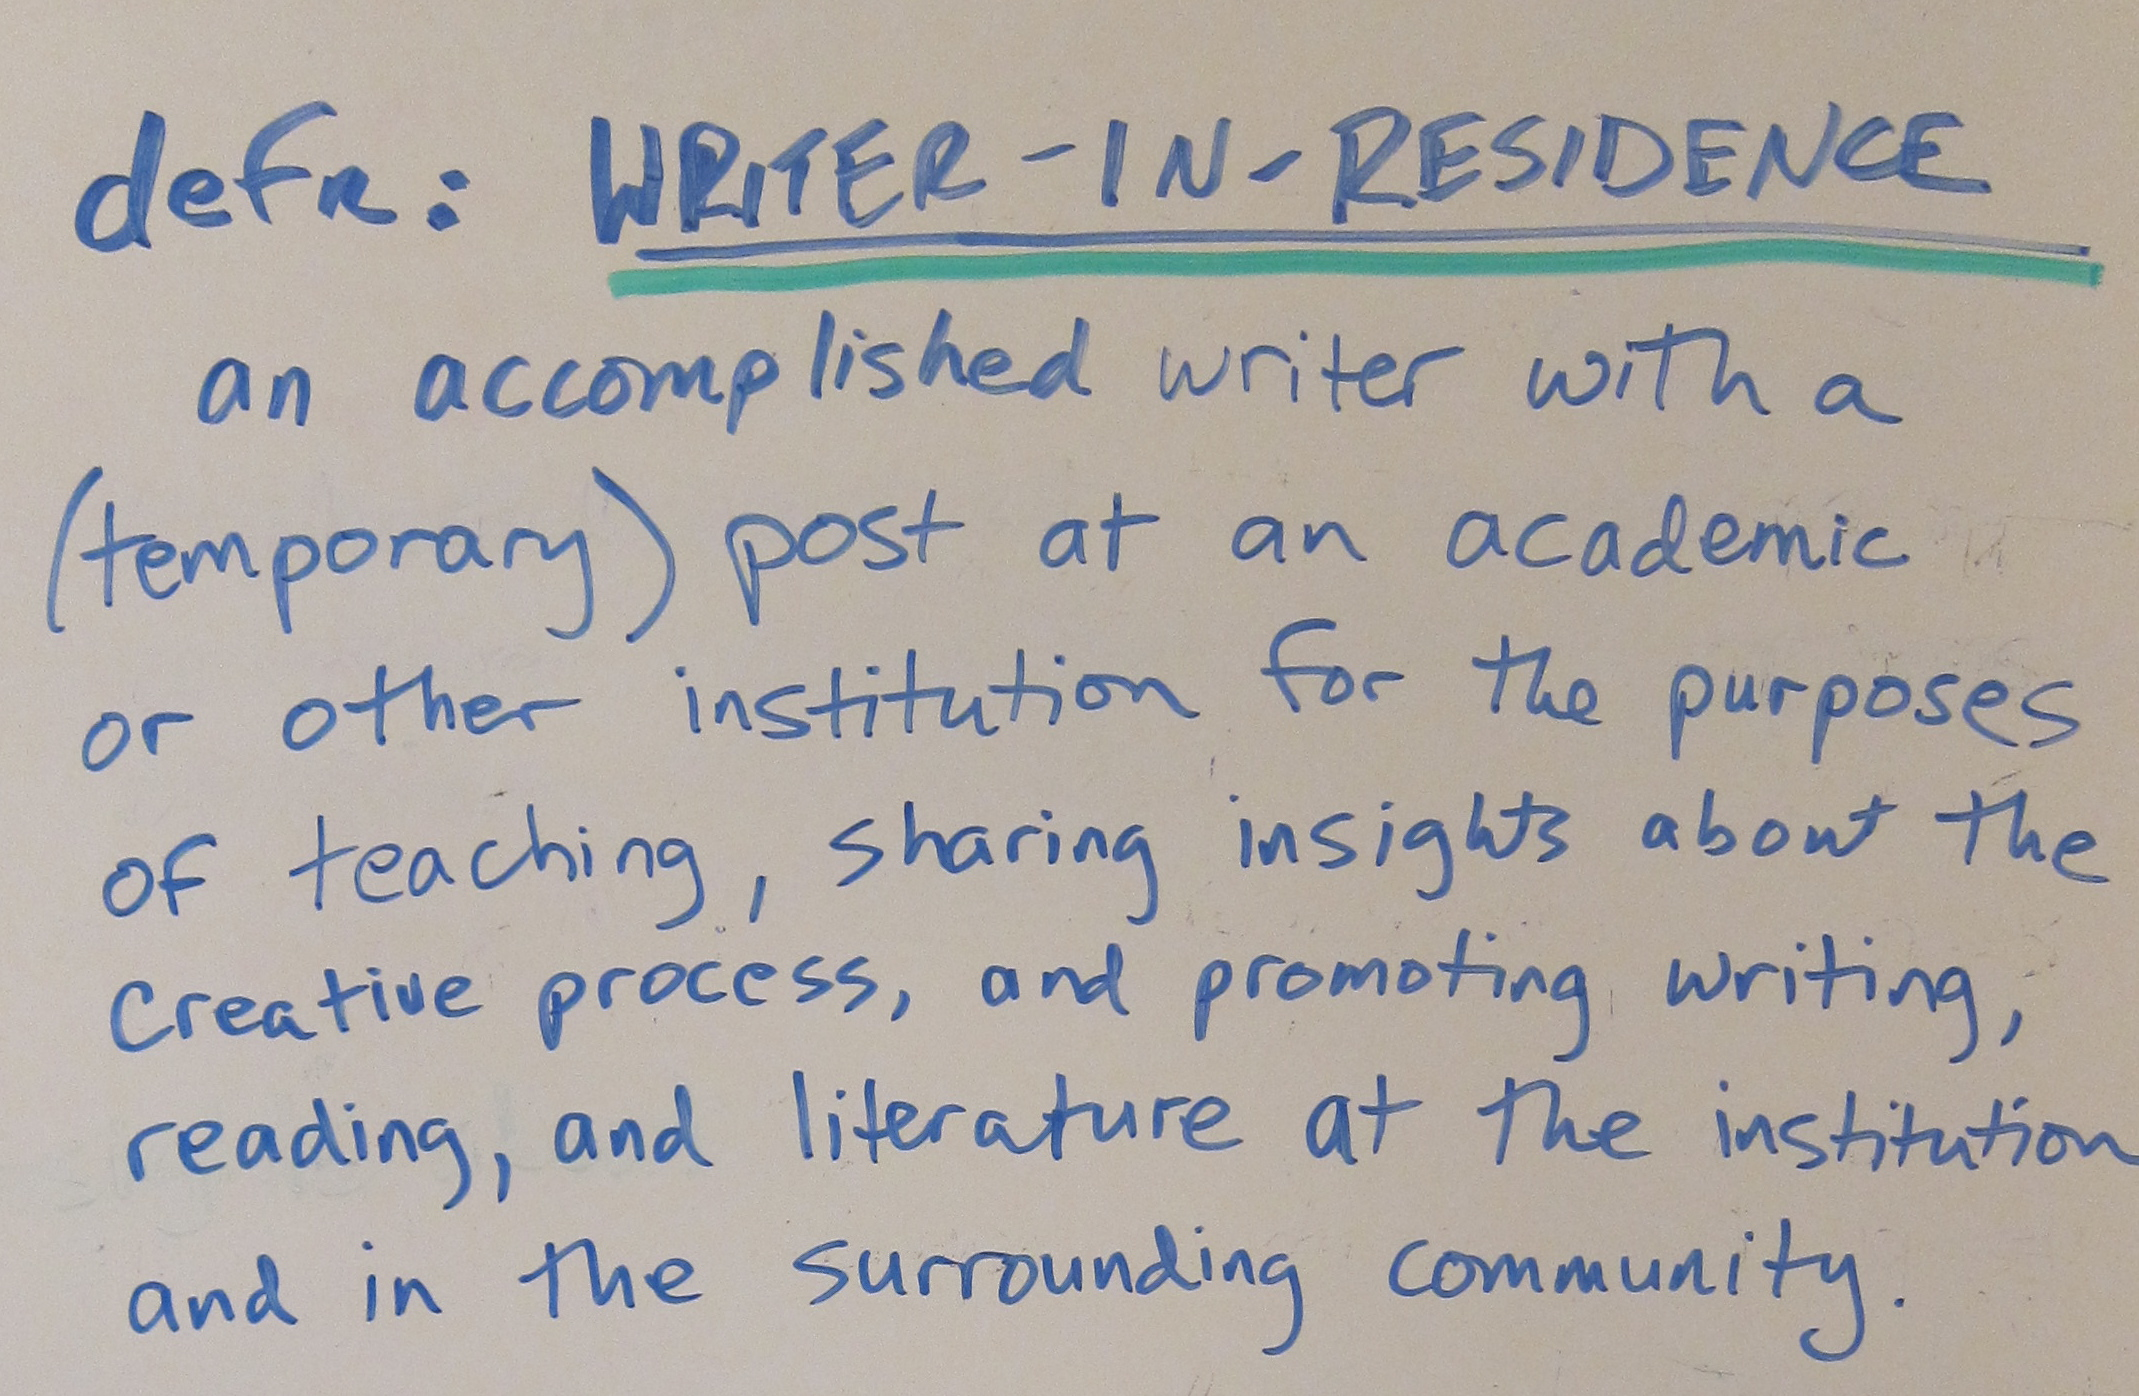 writer-in-residence board-cropped